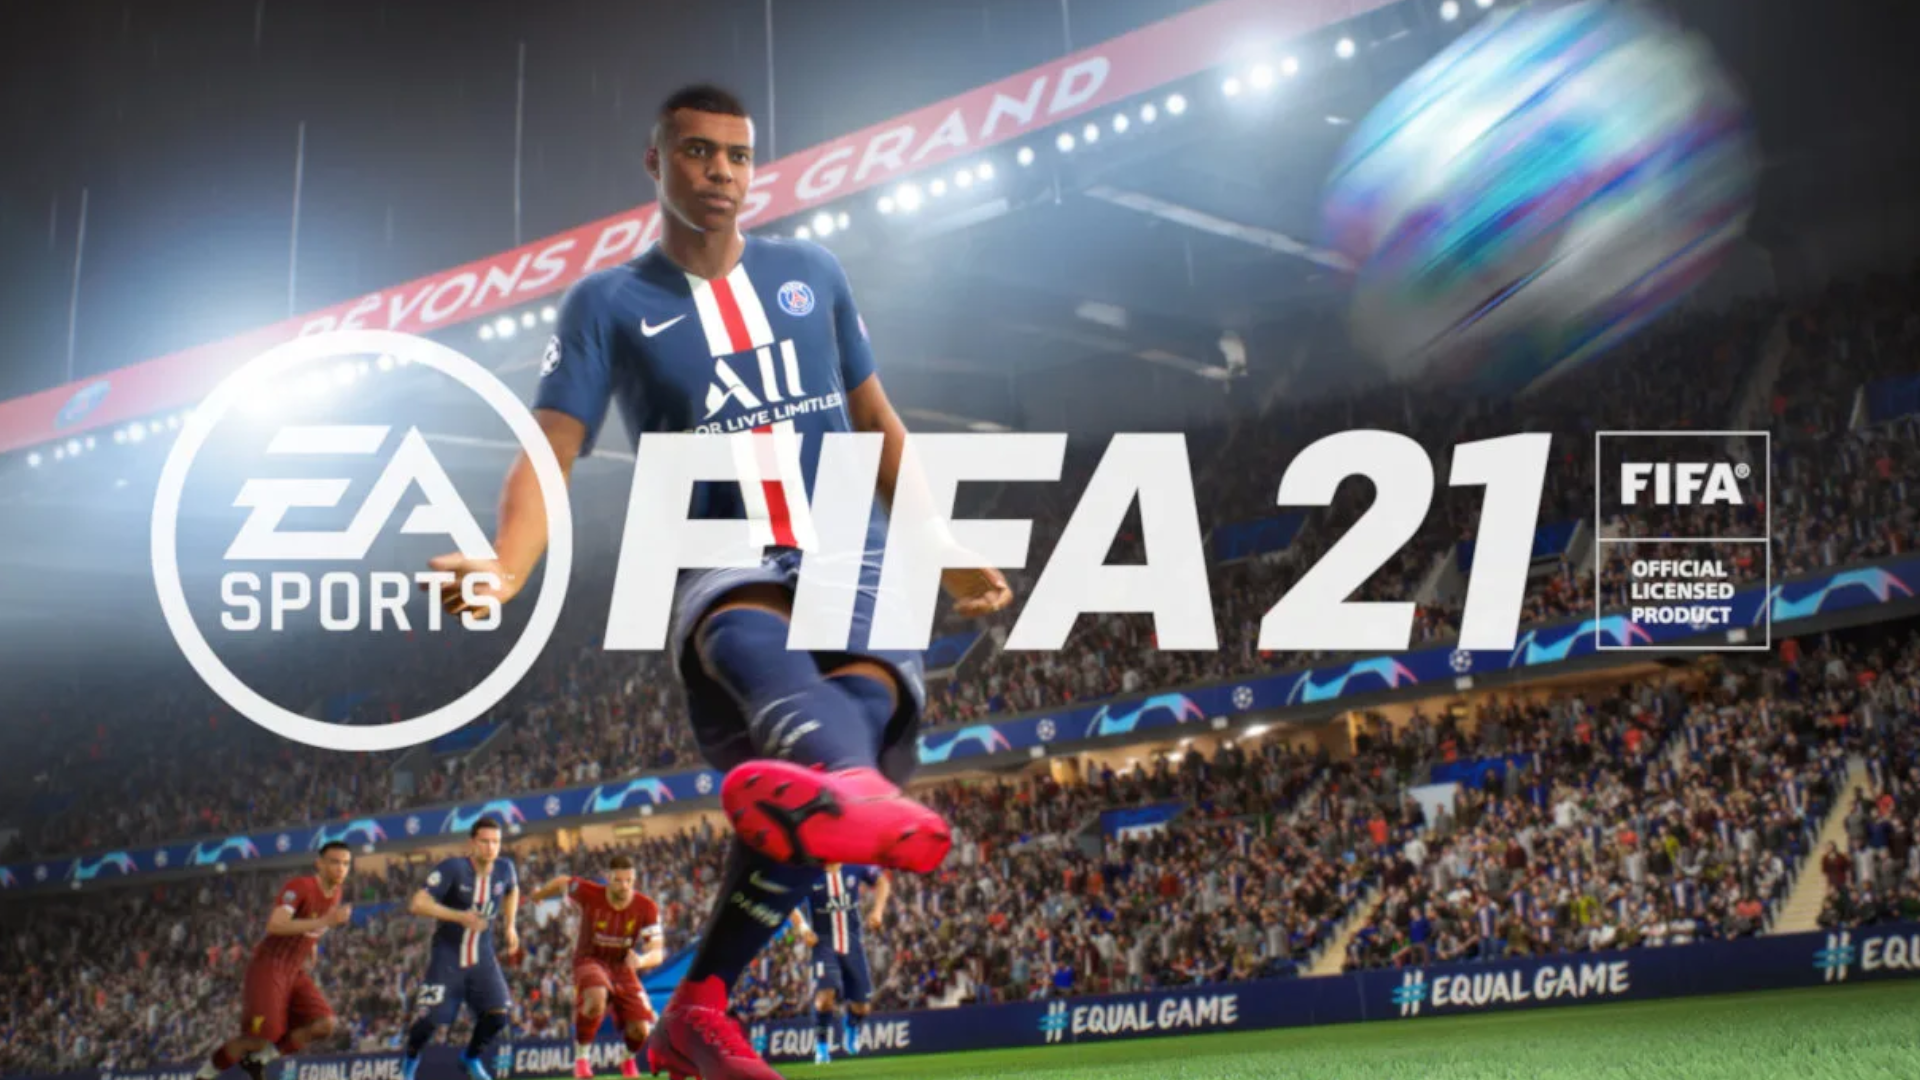 FIFA 21 is finally coming to Google Stadia in March